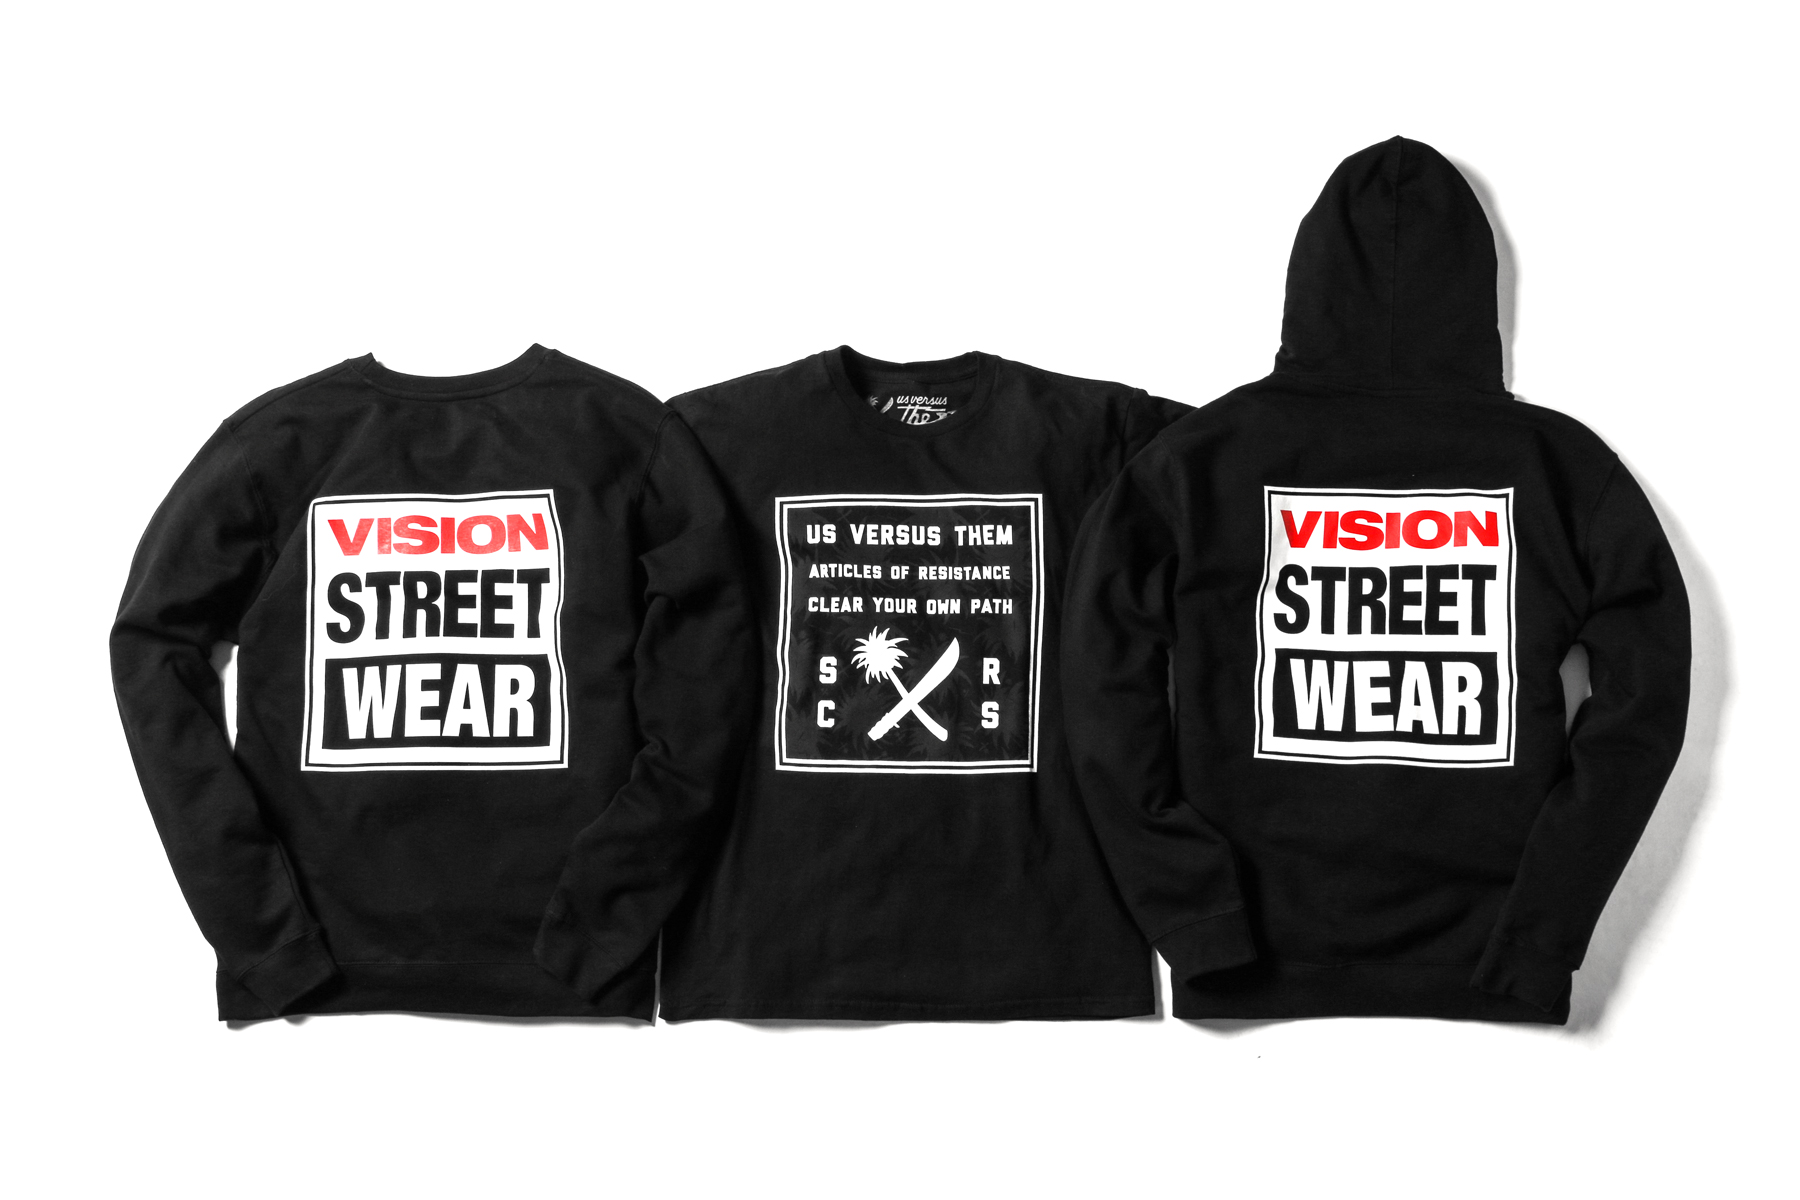 Vision Street Wear x Us Versus Them 2014 Collection